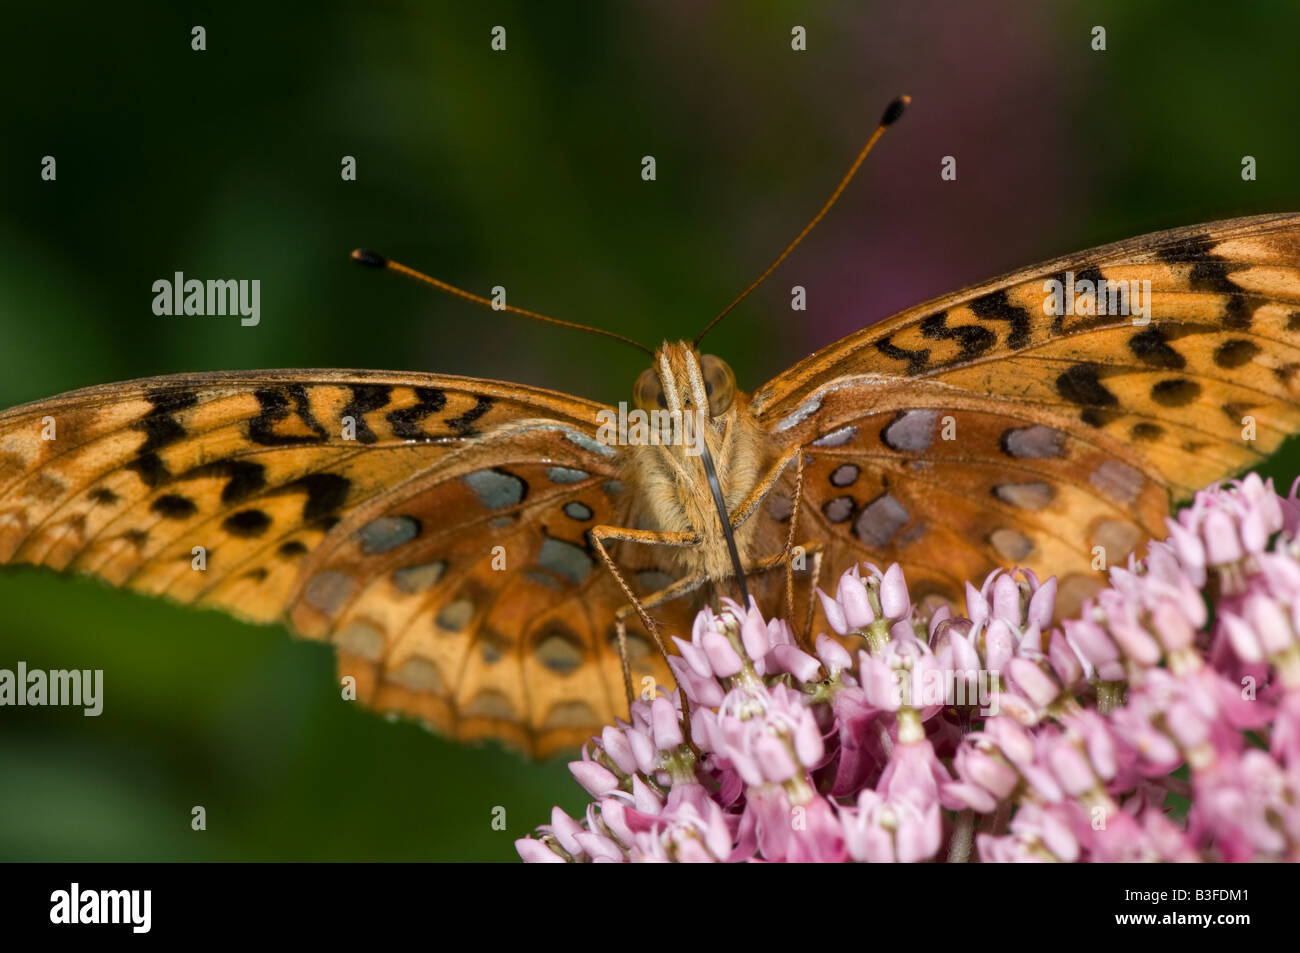 fritillary butterfly sucking nectar from a milkweed flower - Stock Image